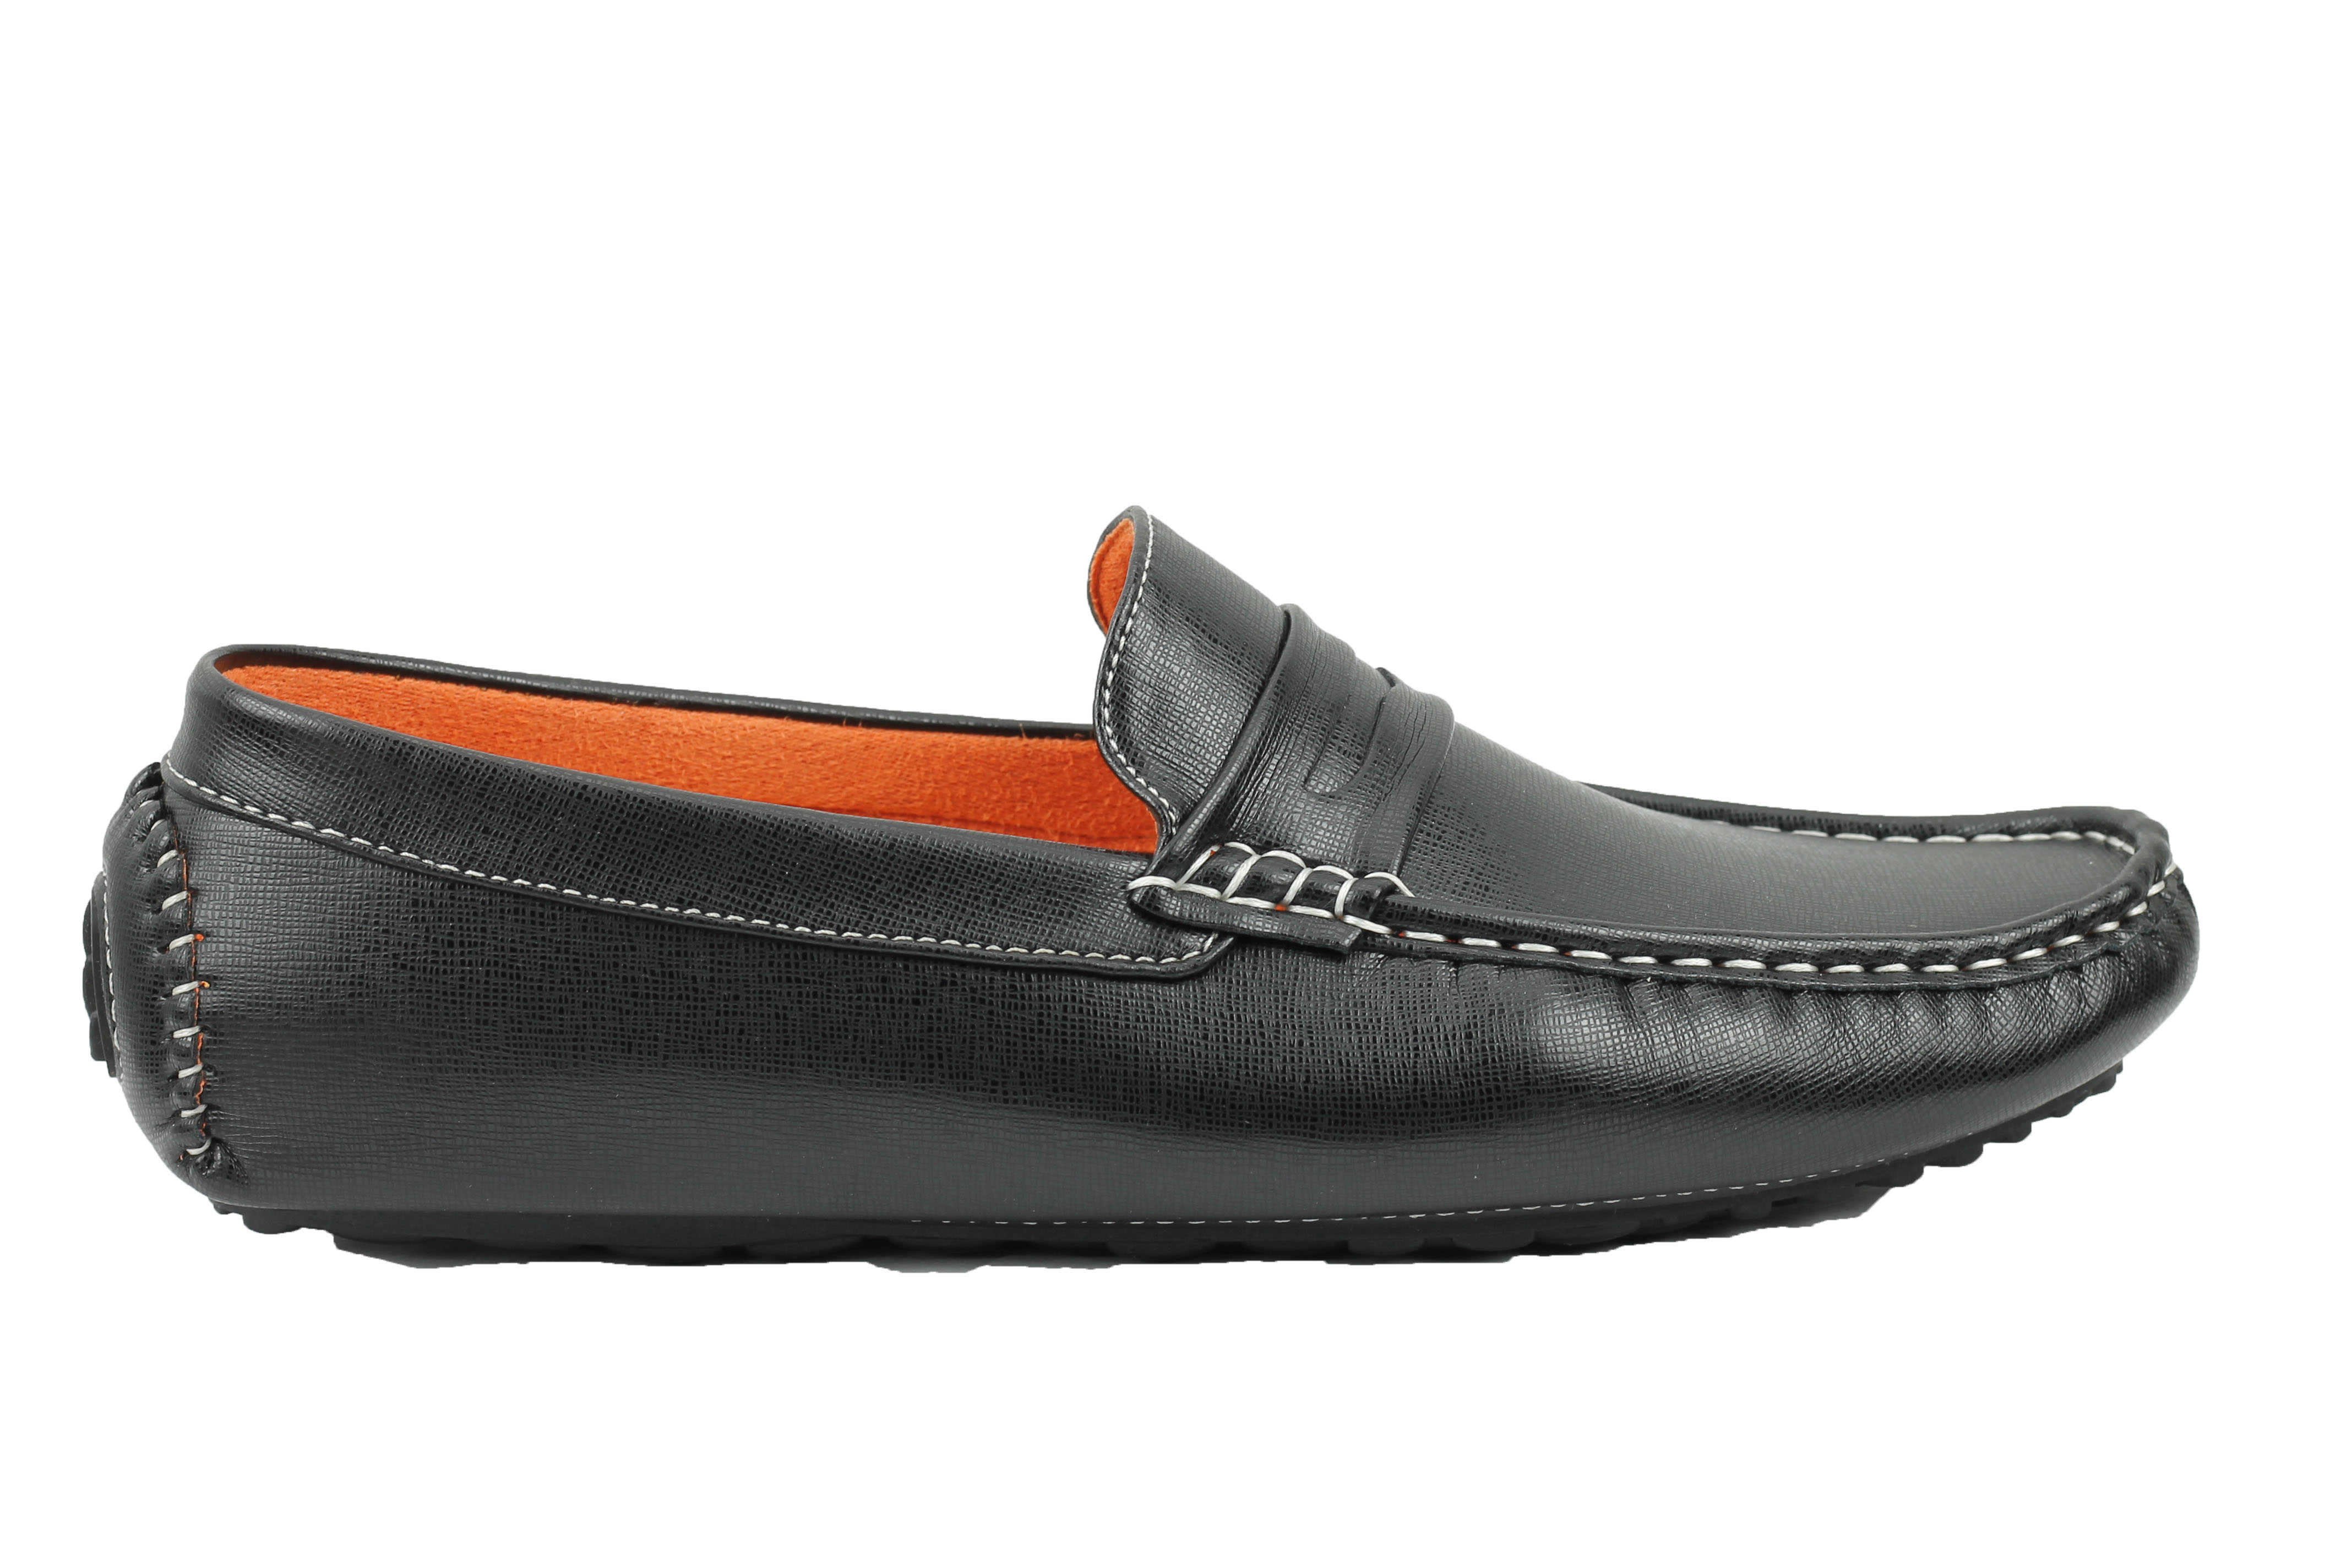 New-Mens-Faux-Leather-Slip-on-Penny-Loafers-Driving-Shoes-UK-Sizes-6-7-8-9-10-11 thumbnail 3